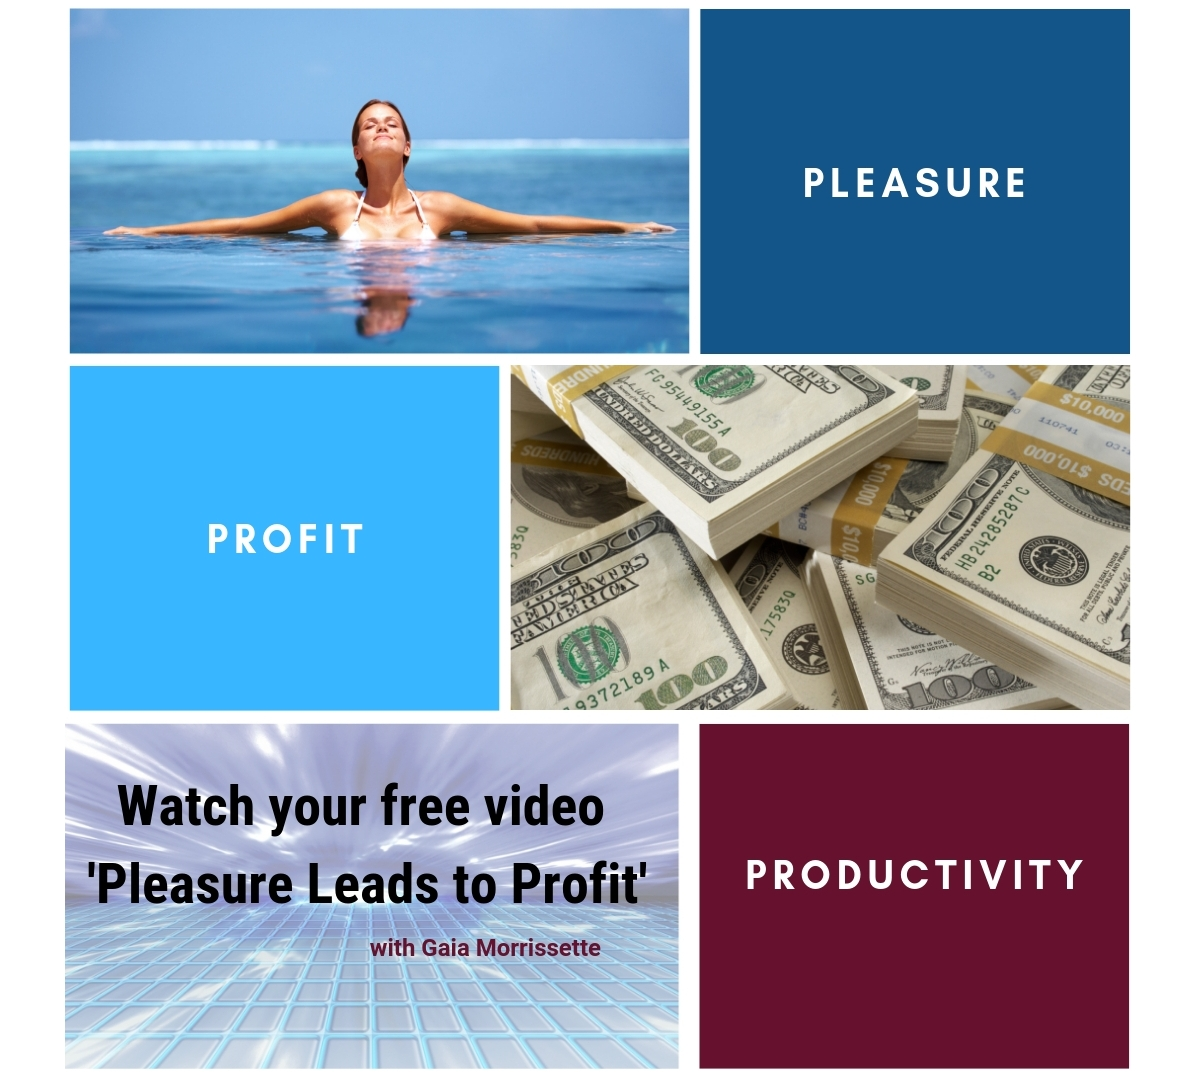 Pleasure Leads to Profit- Gaia Morrissette